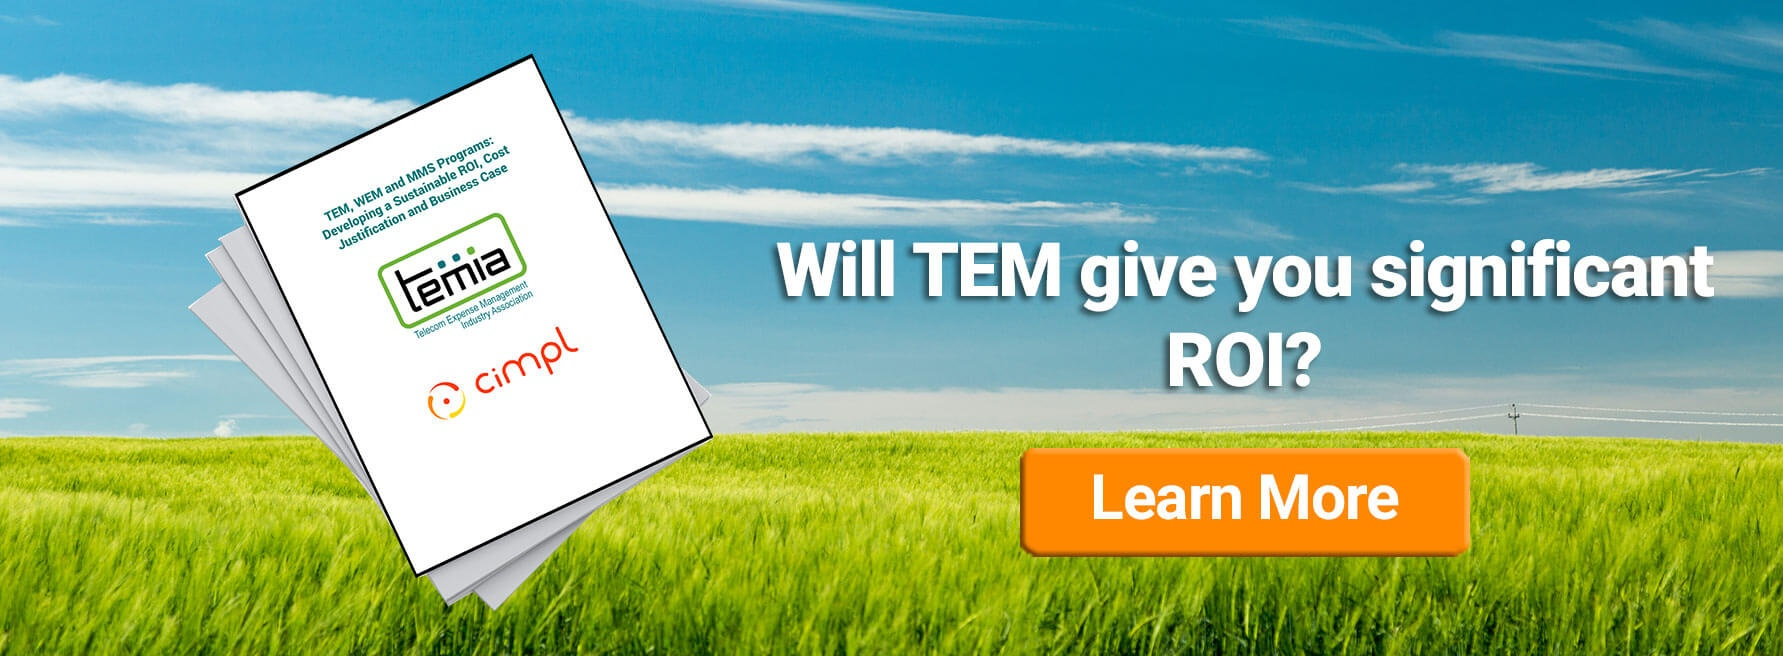 Will TEM Give You a Significant ROI?